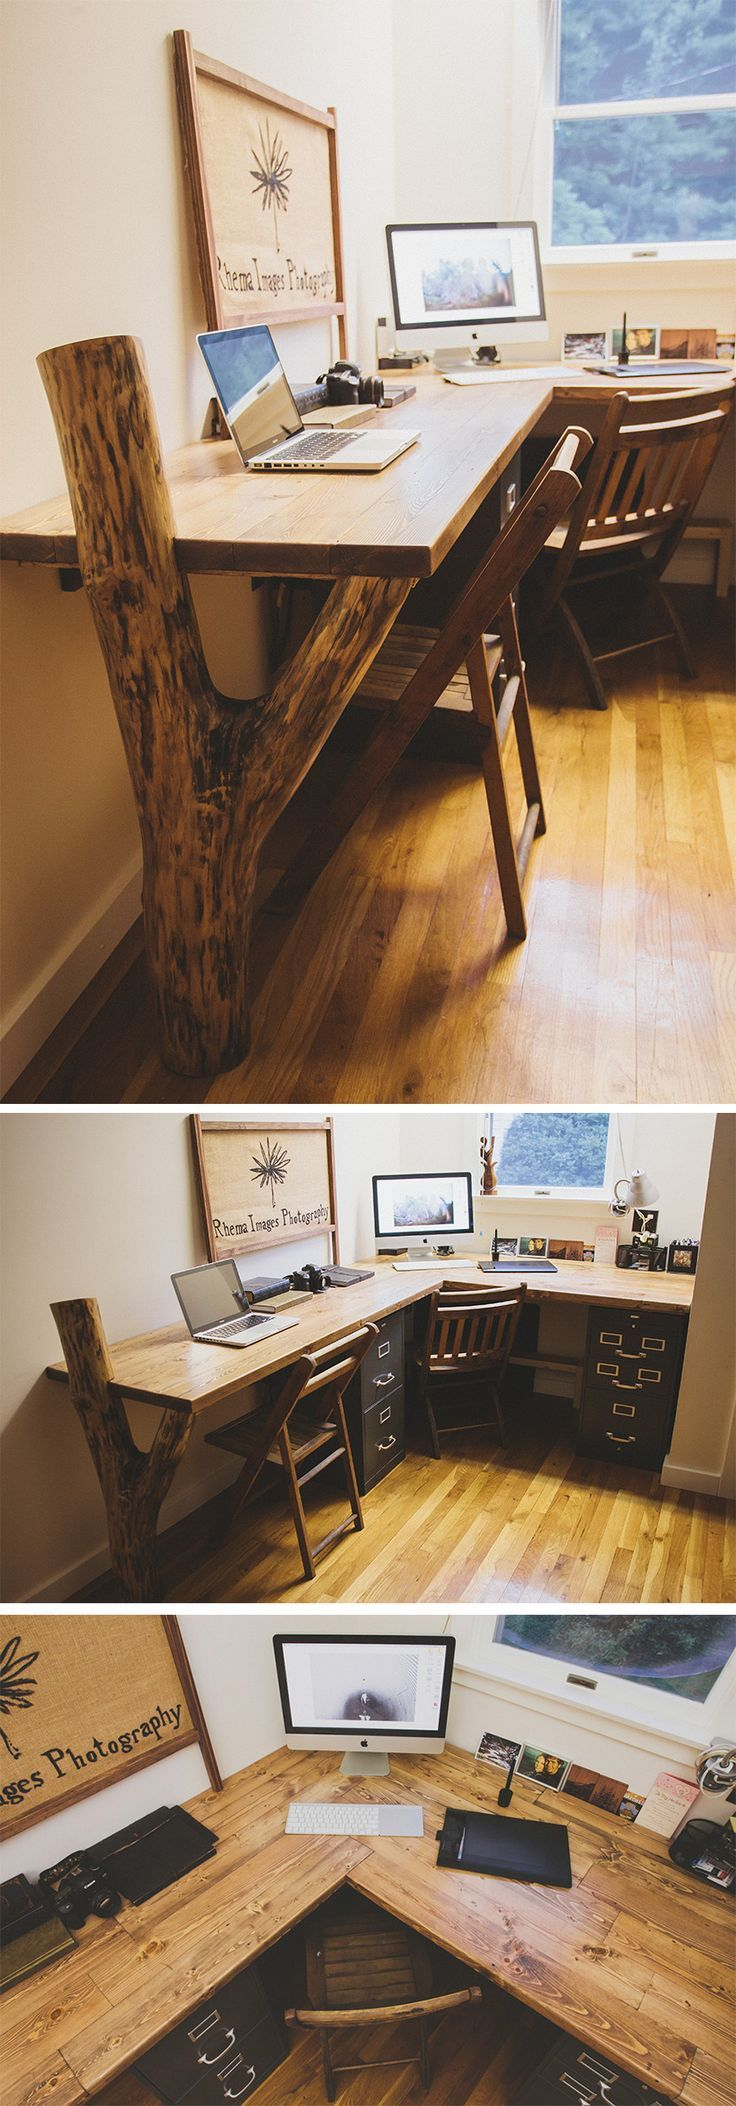 This is what I need to build for our home office!!!!!  This is just gorgeous!!!!